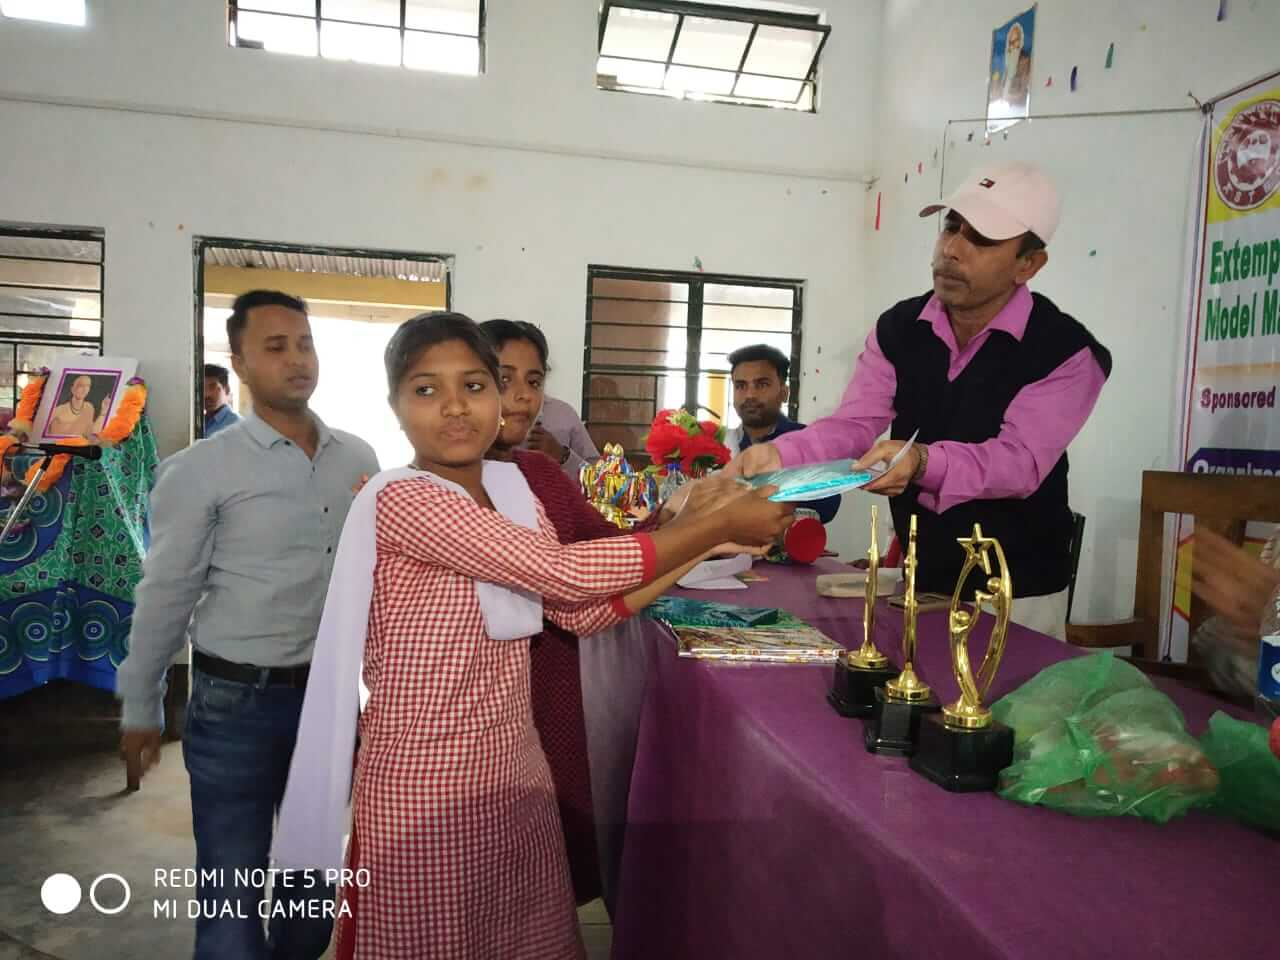 Science-based model making, art competitions organized in Hailakandi district